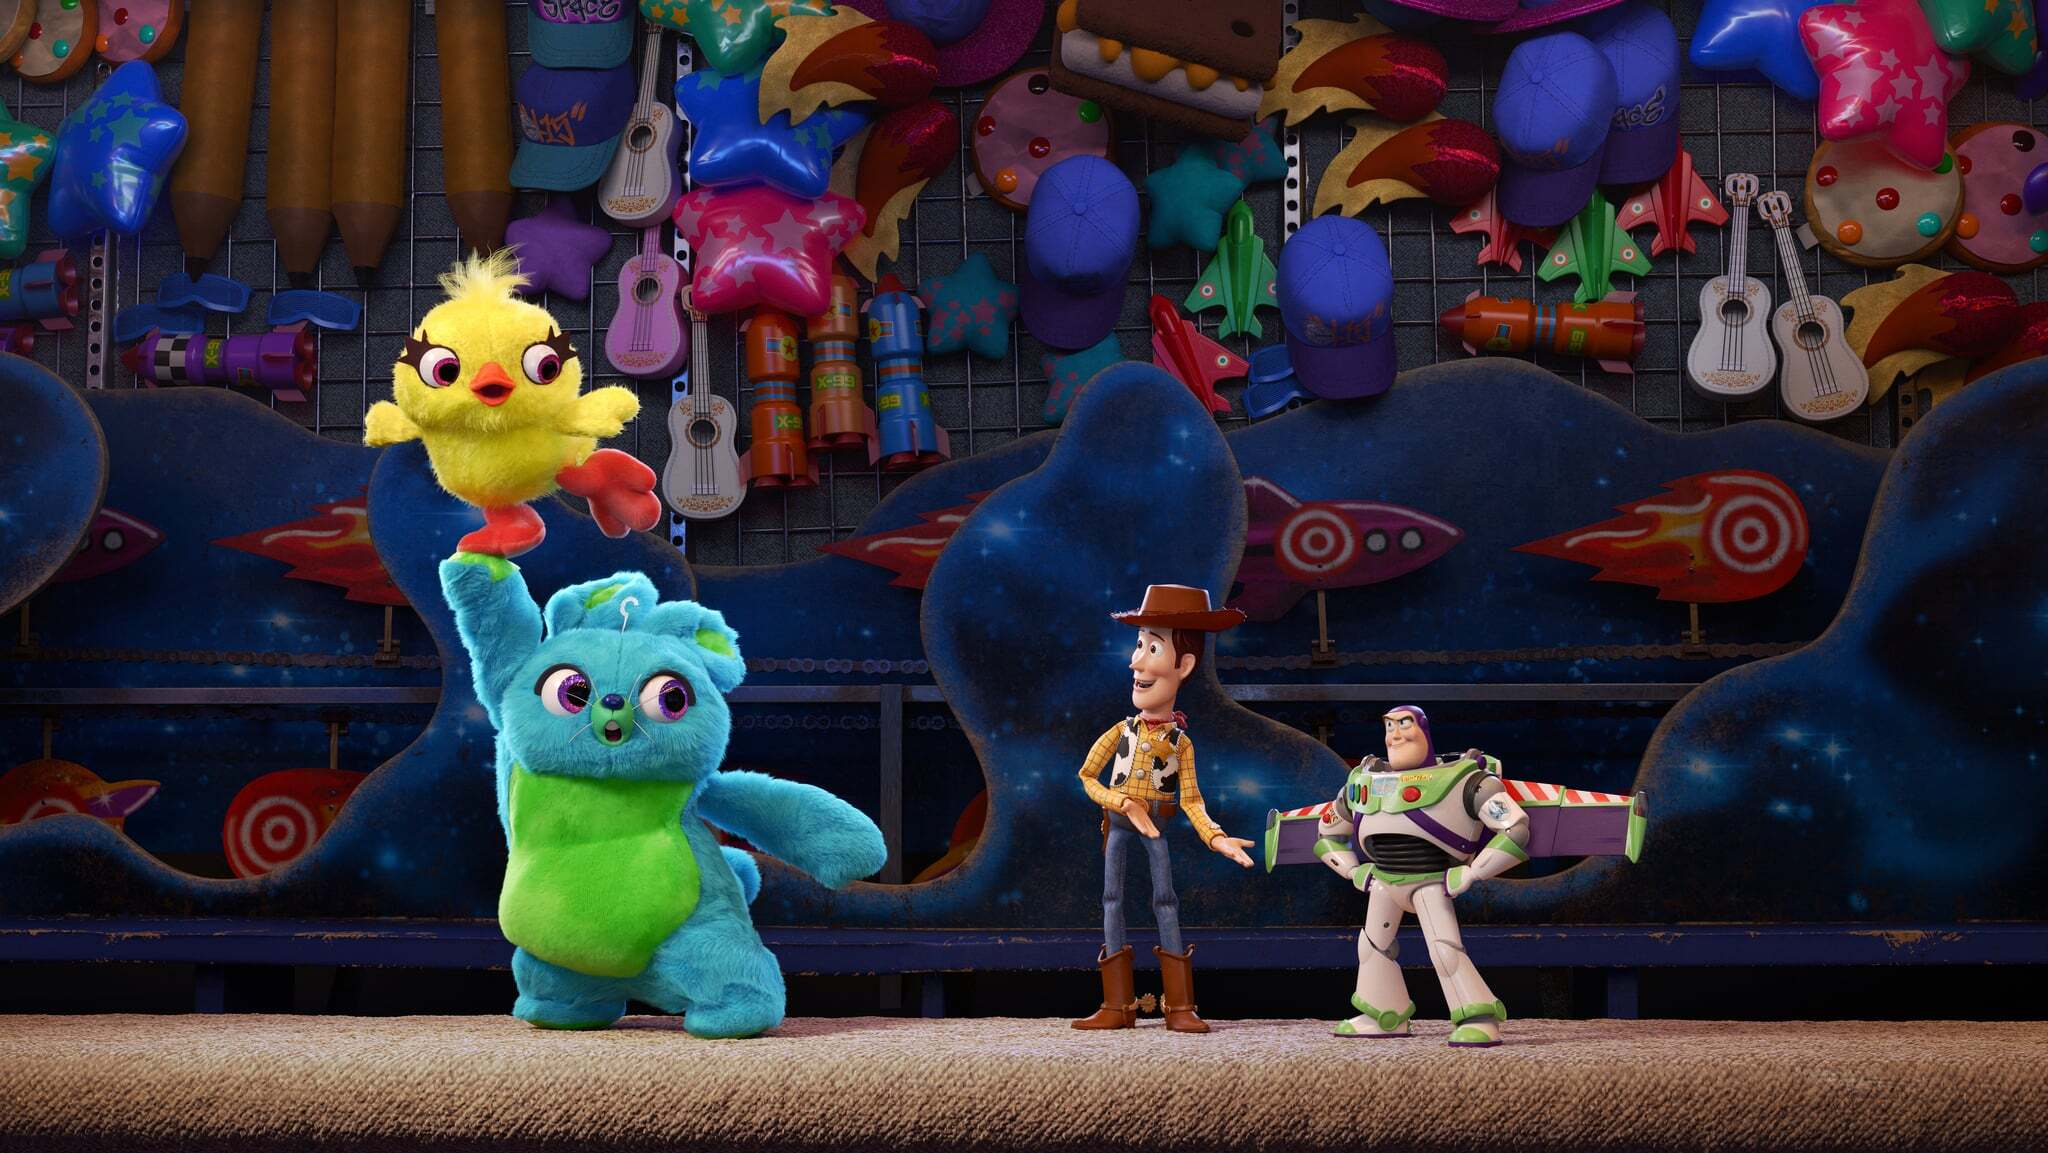 Toy Story movies 4